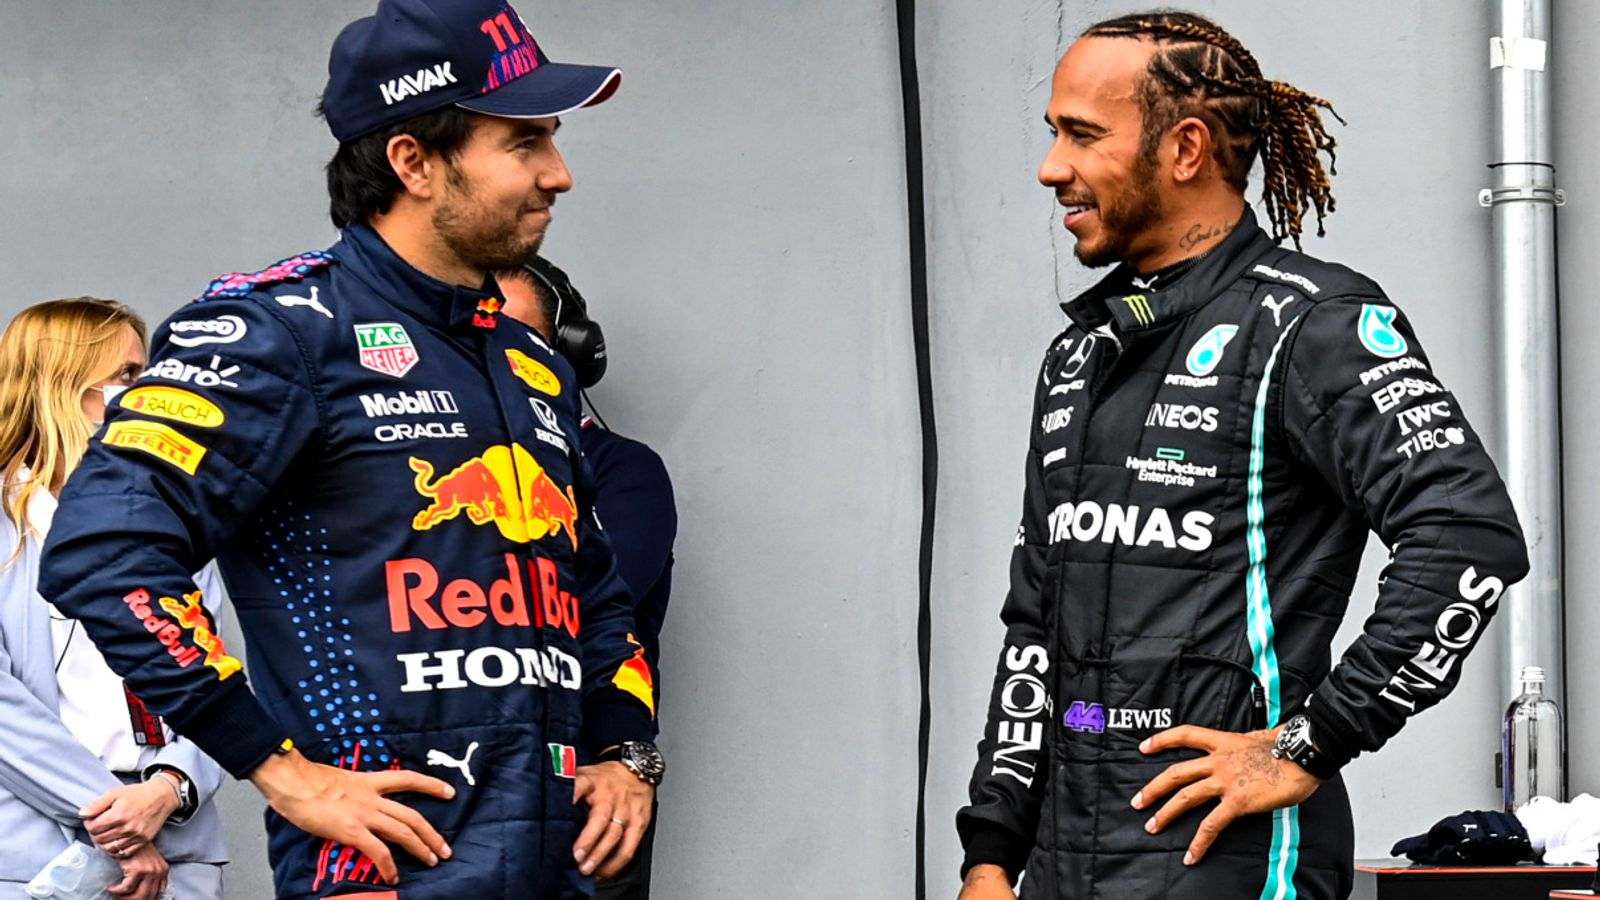 Lewis Hamilton 'surprised' to beat Red Bulls to Emilia-Romagna GP pole as he continues to 'love' new fight